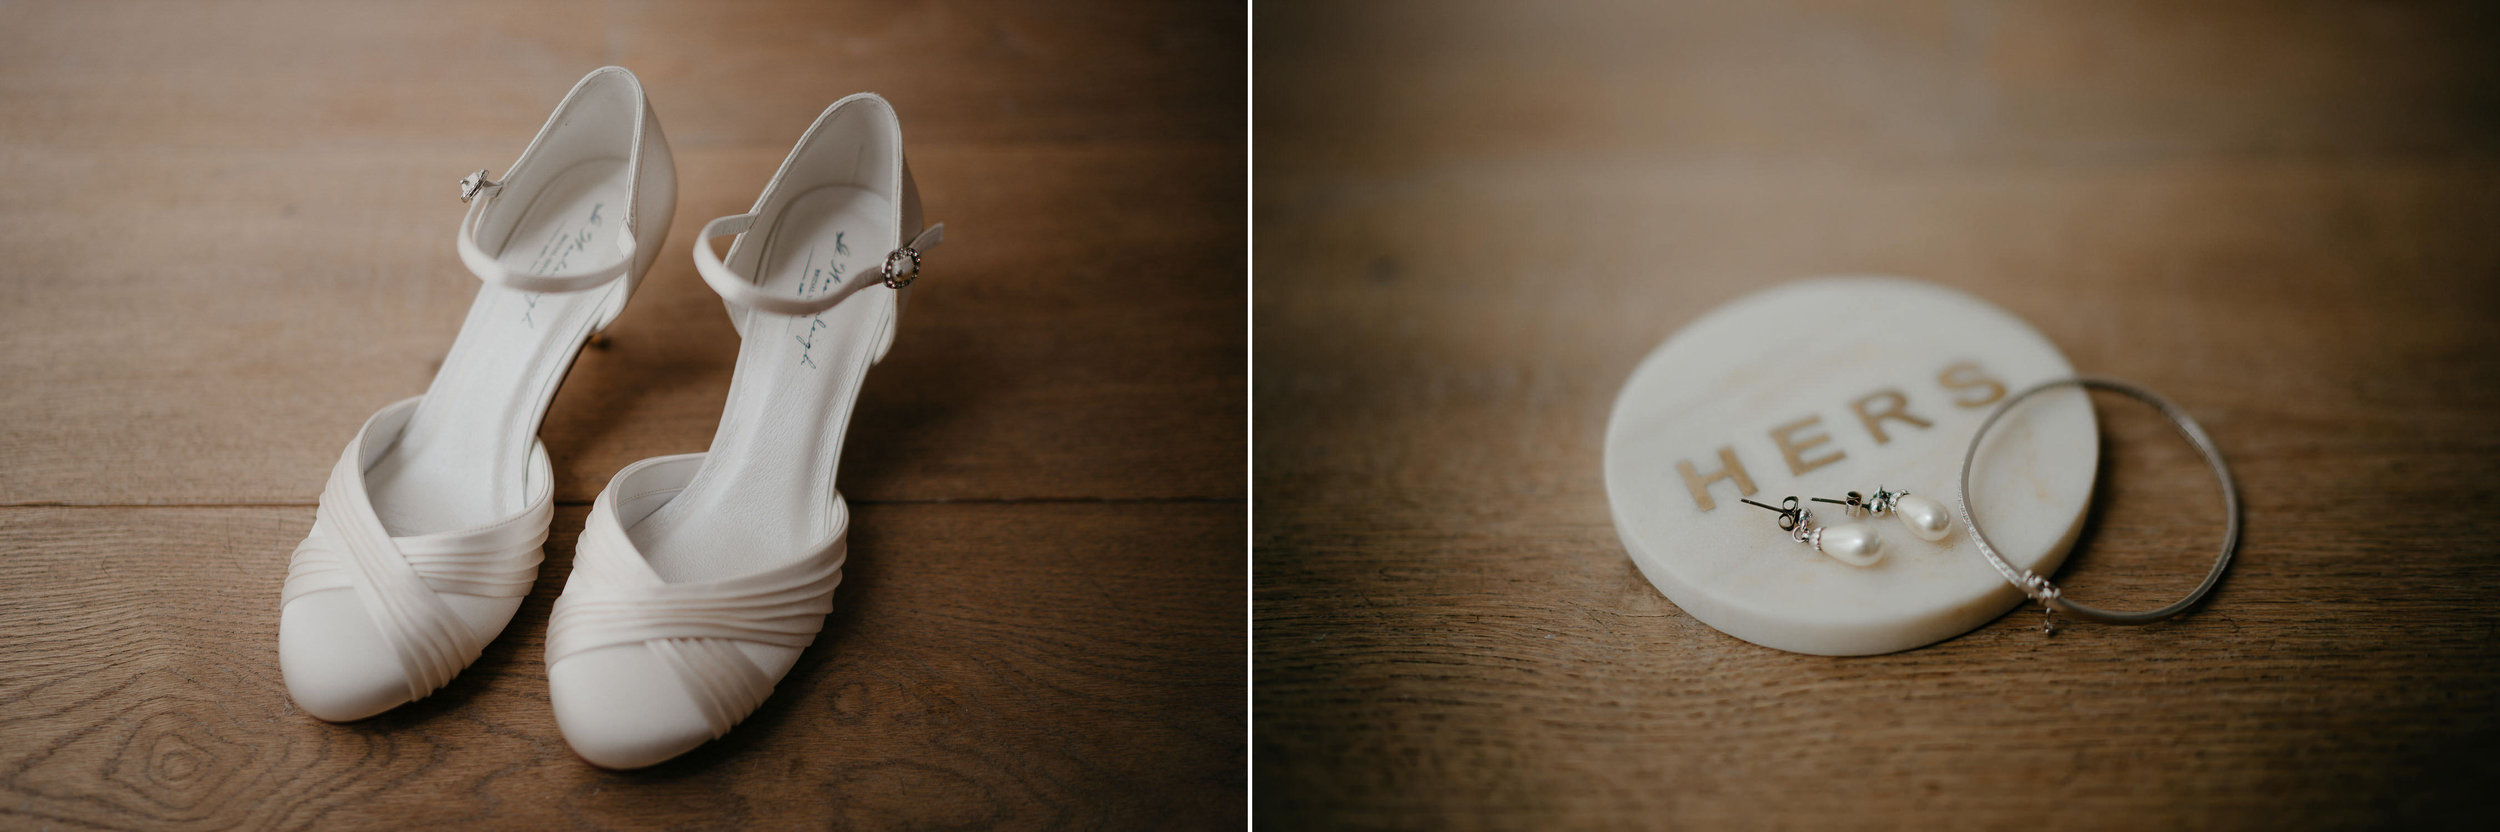 wedding photography details shoes earrings and ring